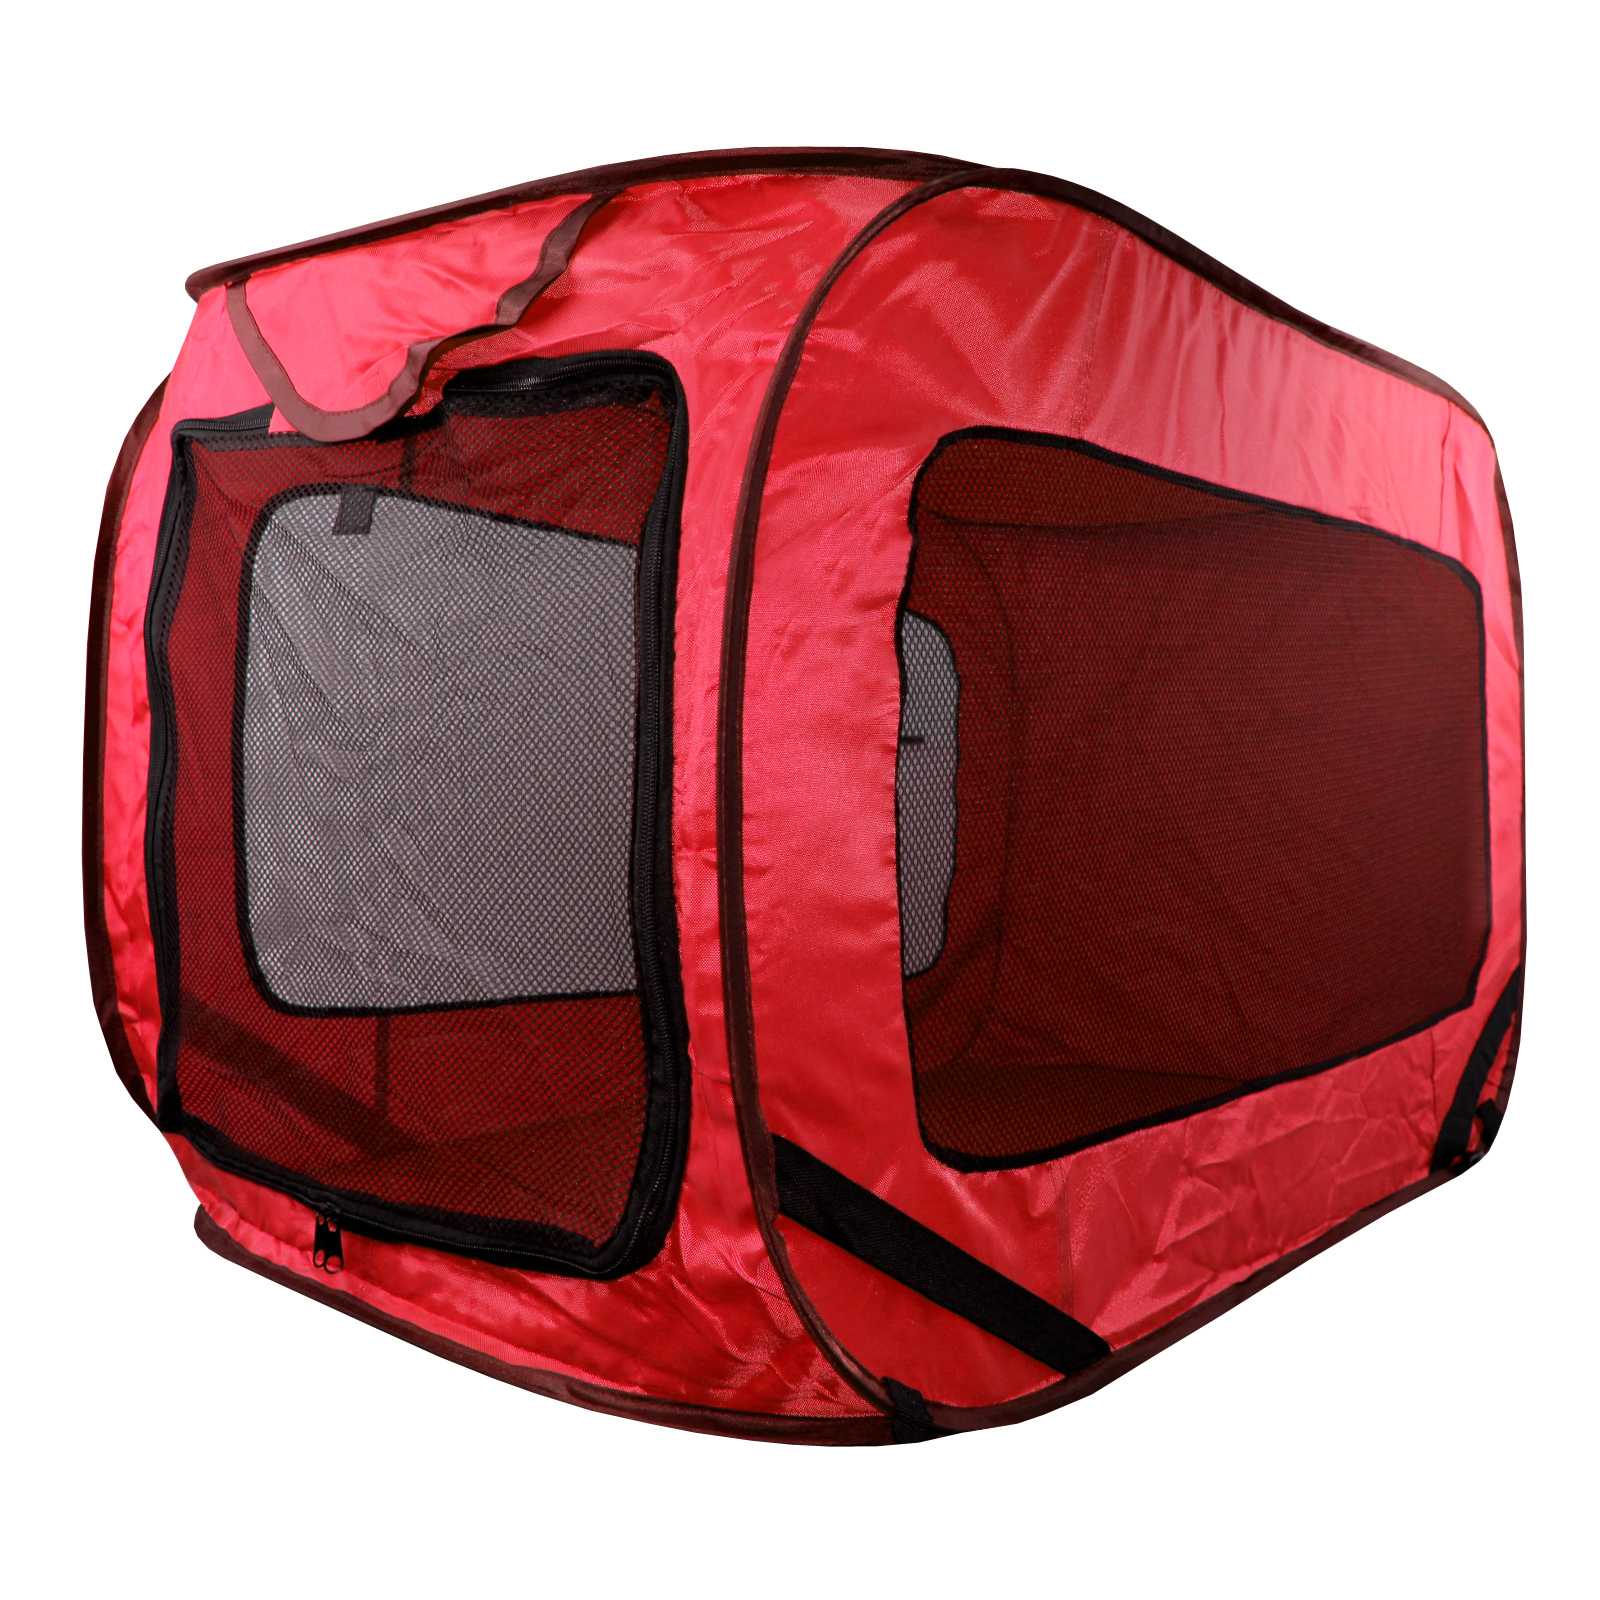 Thumbnail 1 ...  sc 1 st  eBay & Kennel Dog Canvas Pop Up Travel Cage Run Light Weight Portable Red ...